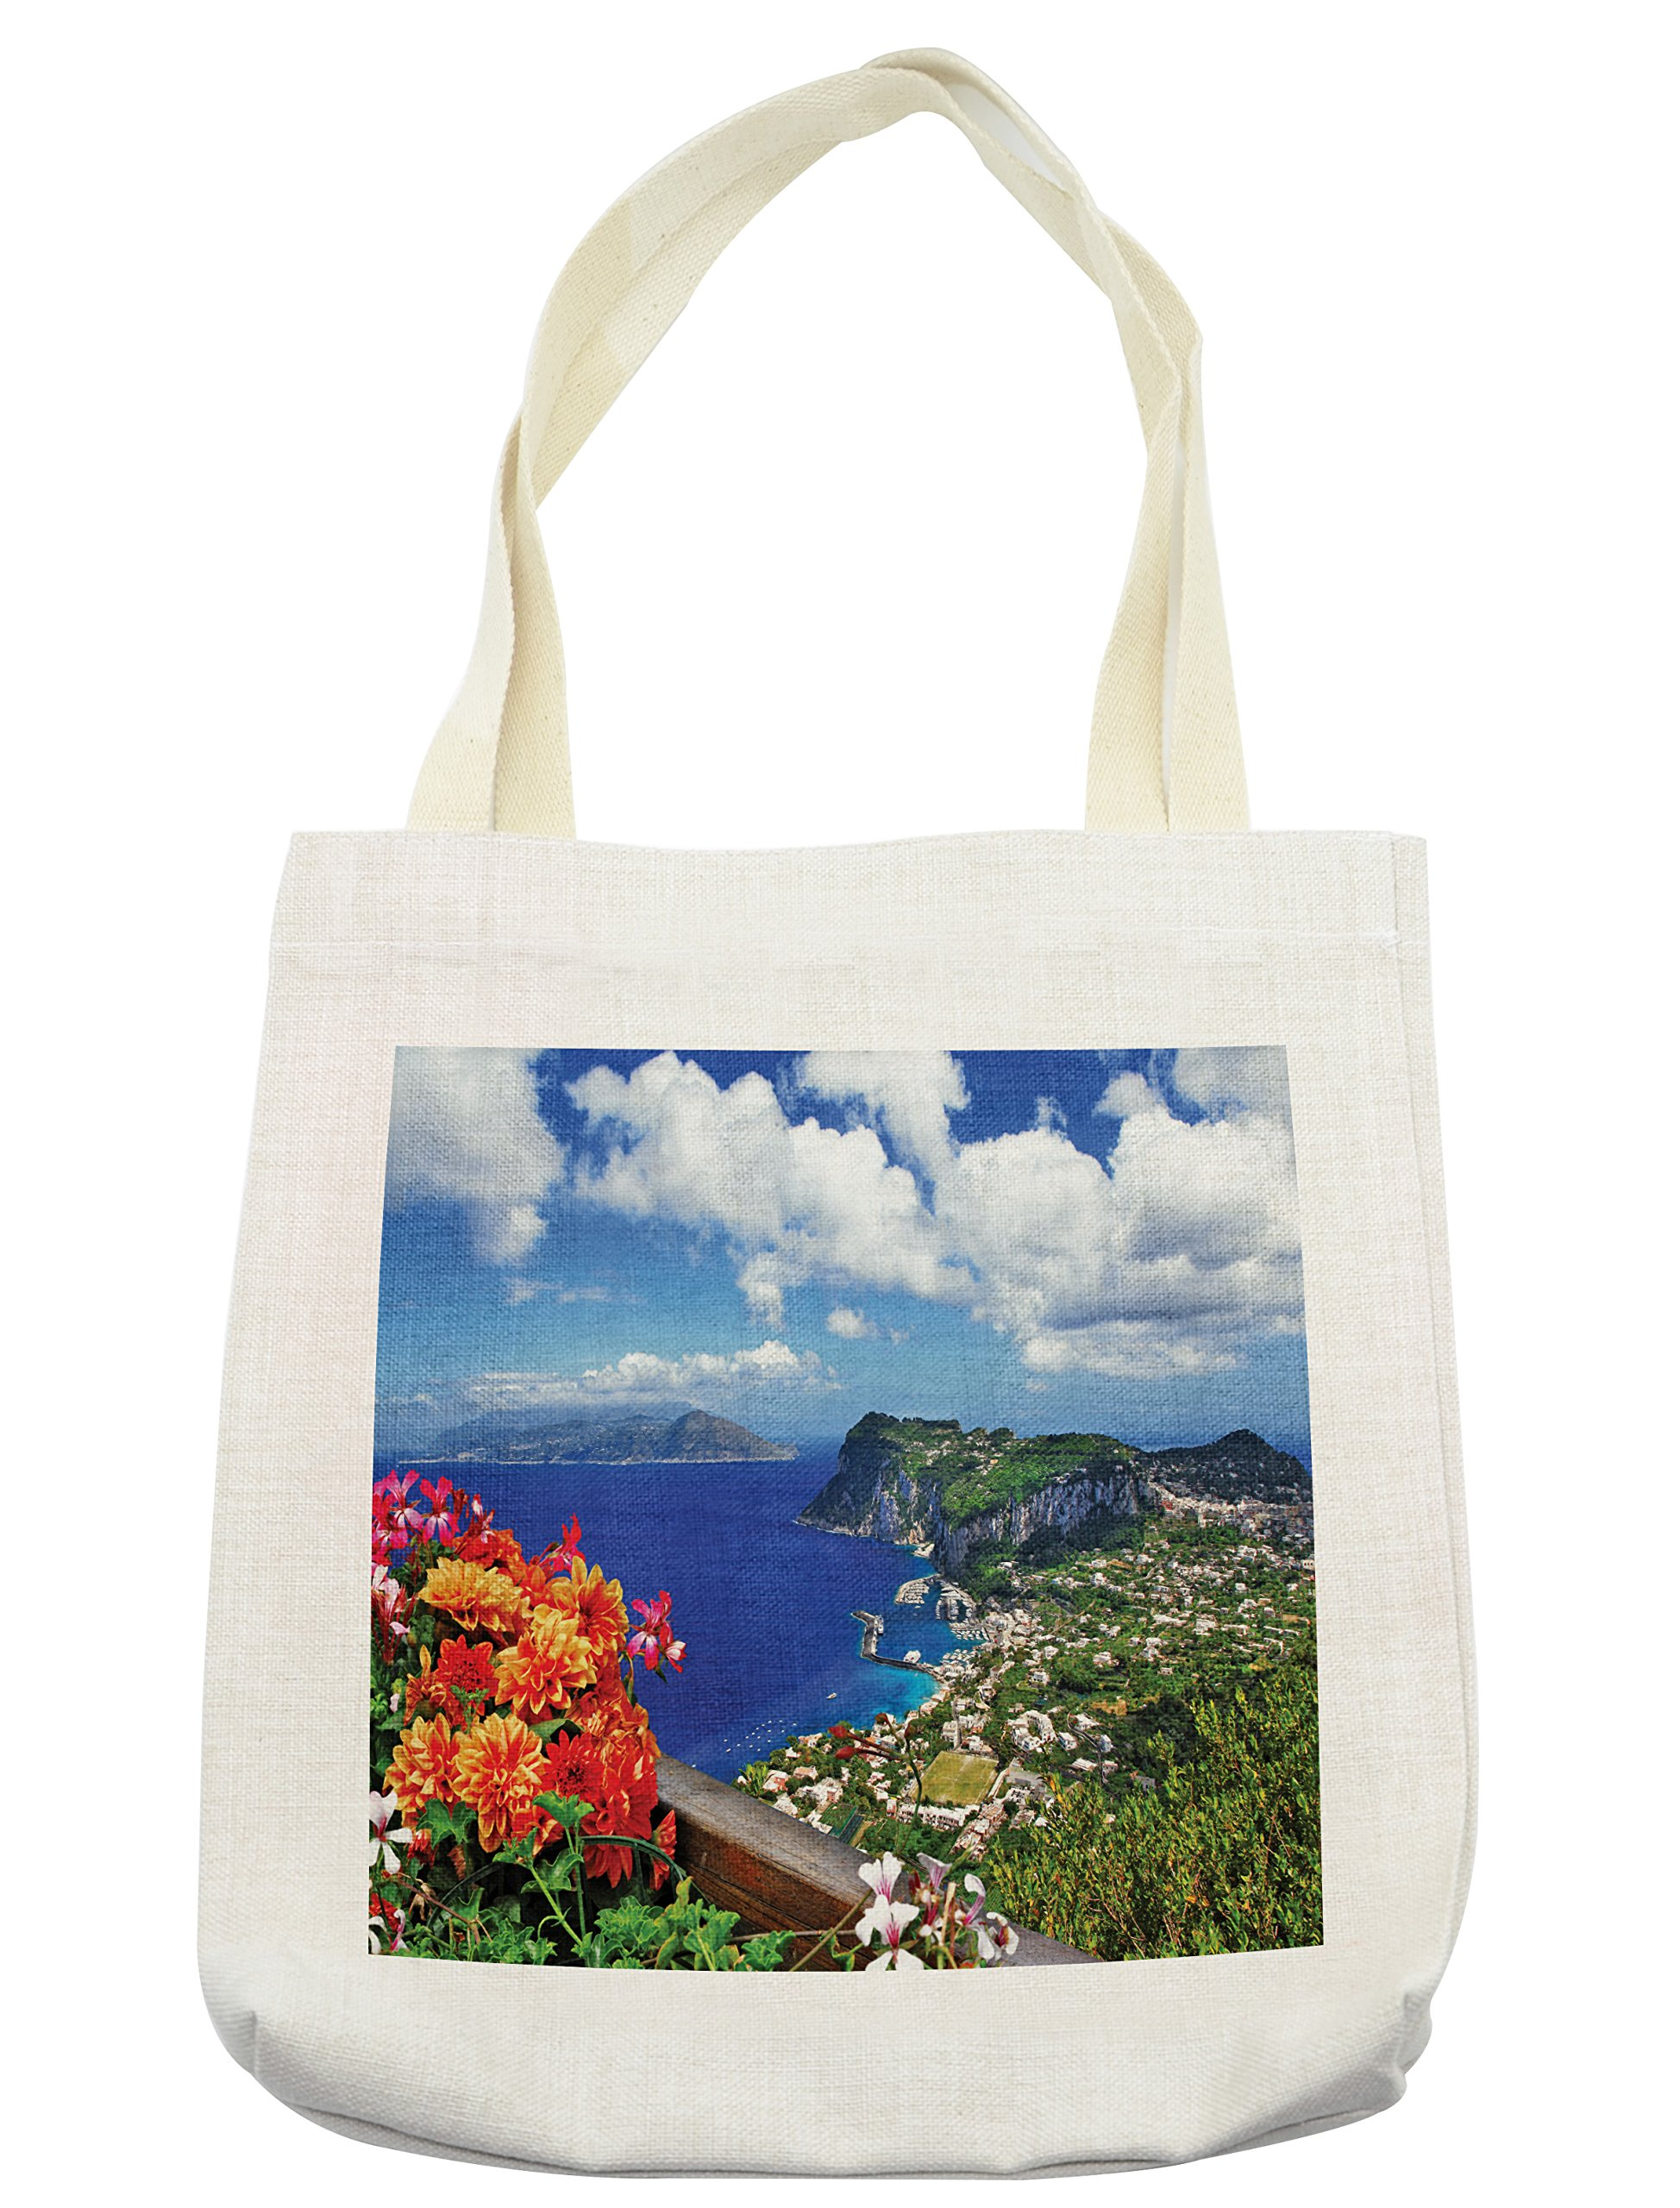 670fecf6b949 Lunarable Island Tote Bag, Scenic Capri Island, Italy Mountain Houses  Flowers View from Balcony Landmark, Cloth Linen Reusable Bag for Shopping  ...